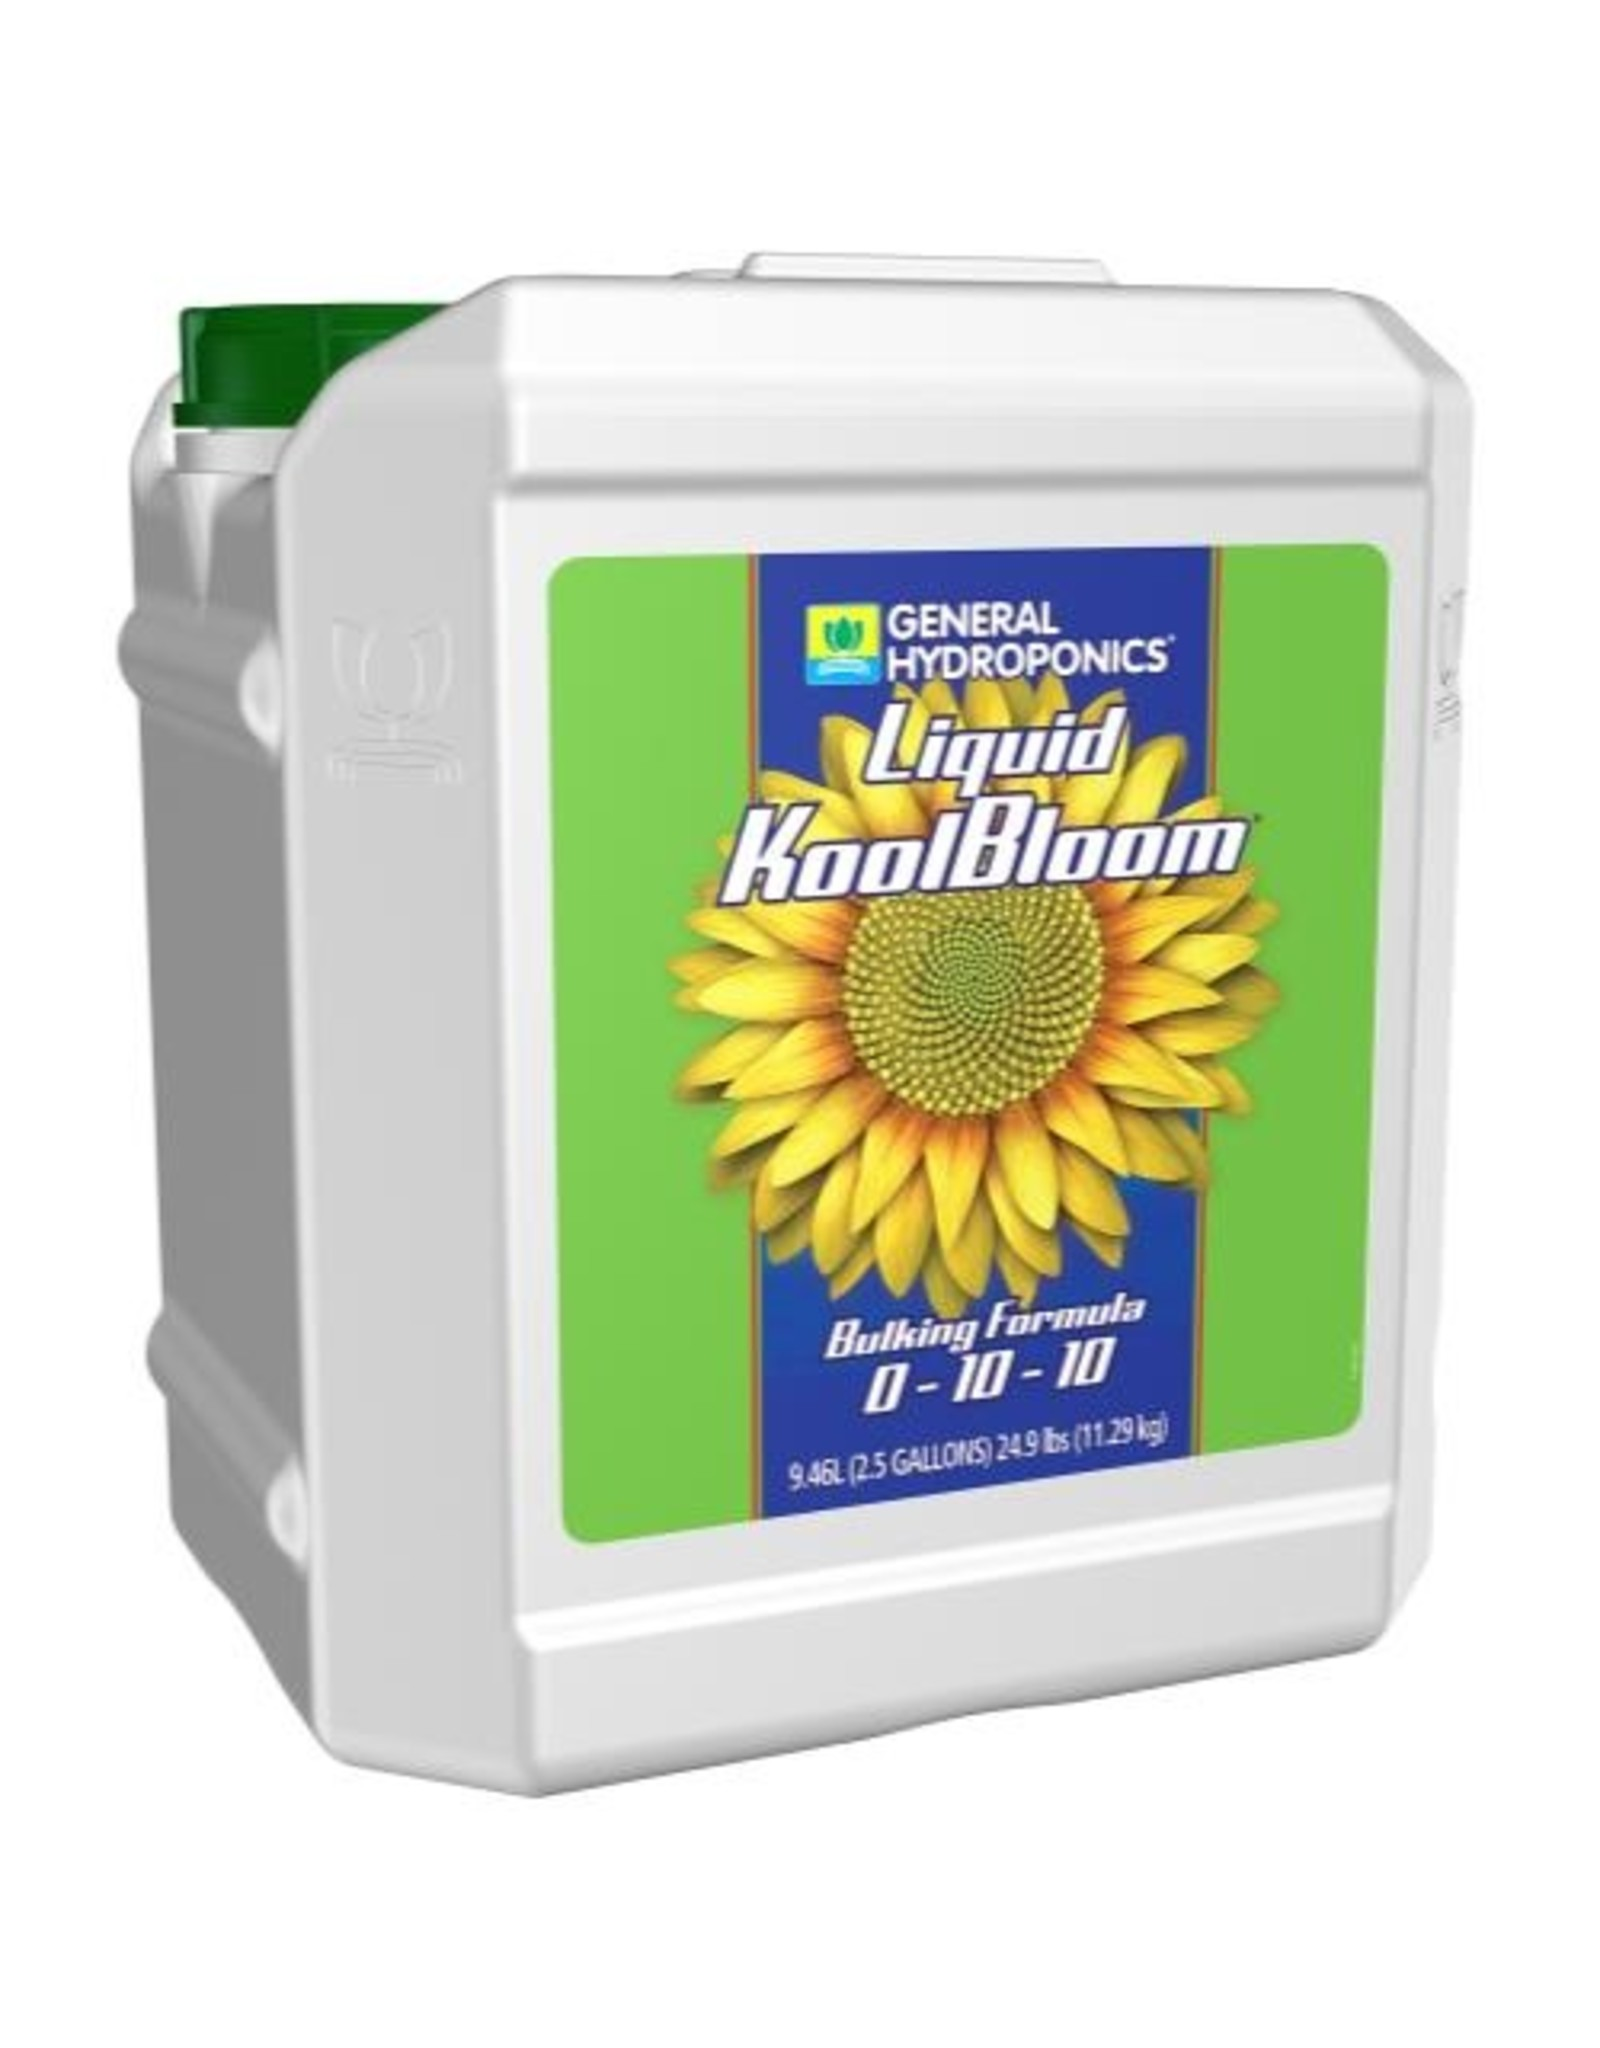 General Hydroponics GH Koolbloom Liquid 2.5 gal